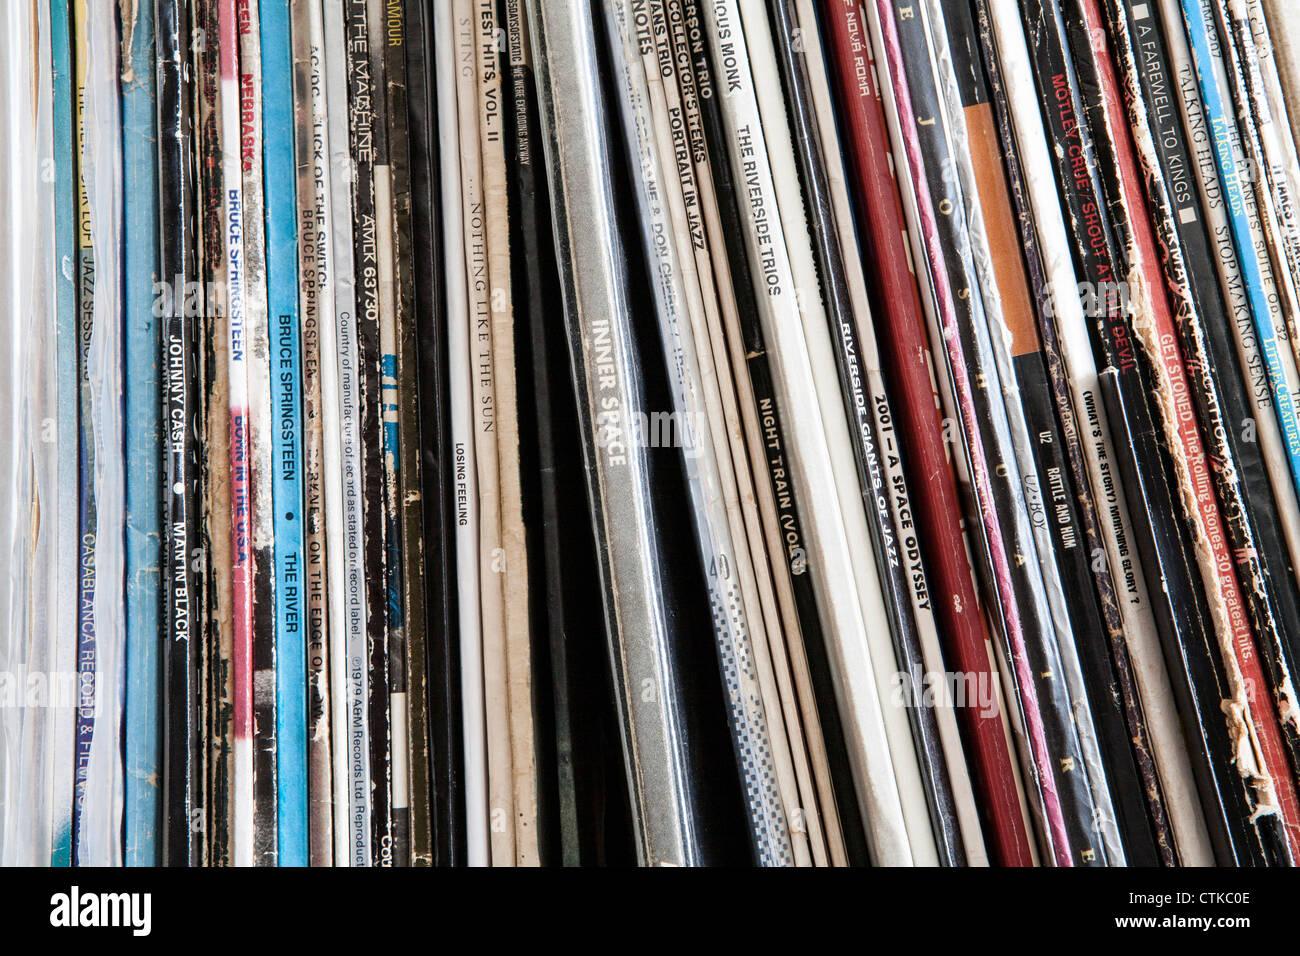 Collection of vinyl records on a shelf - Stock Image